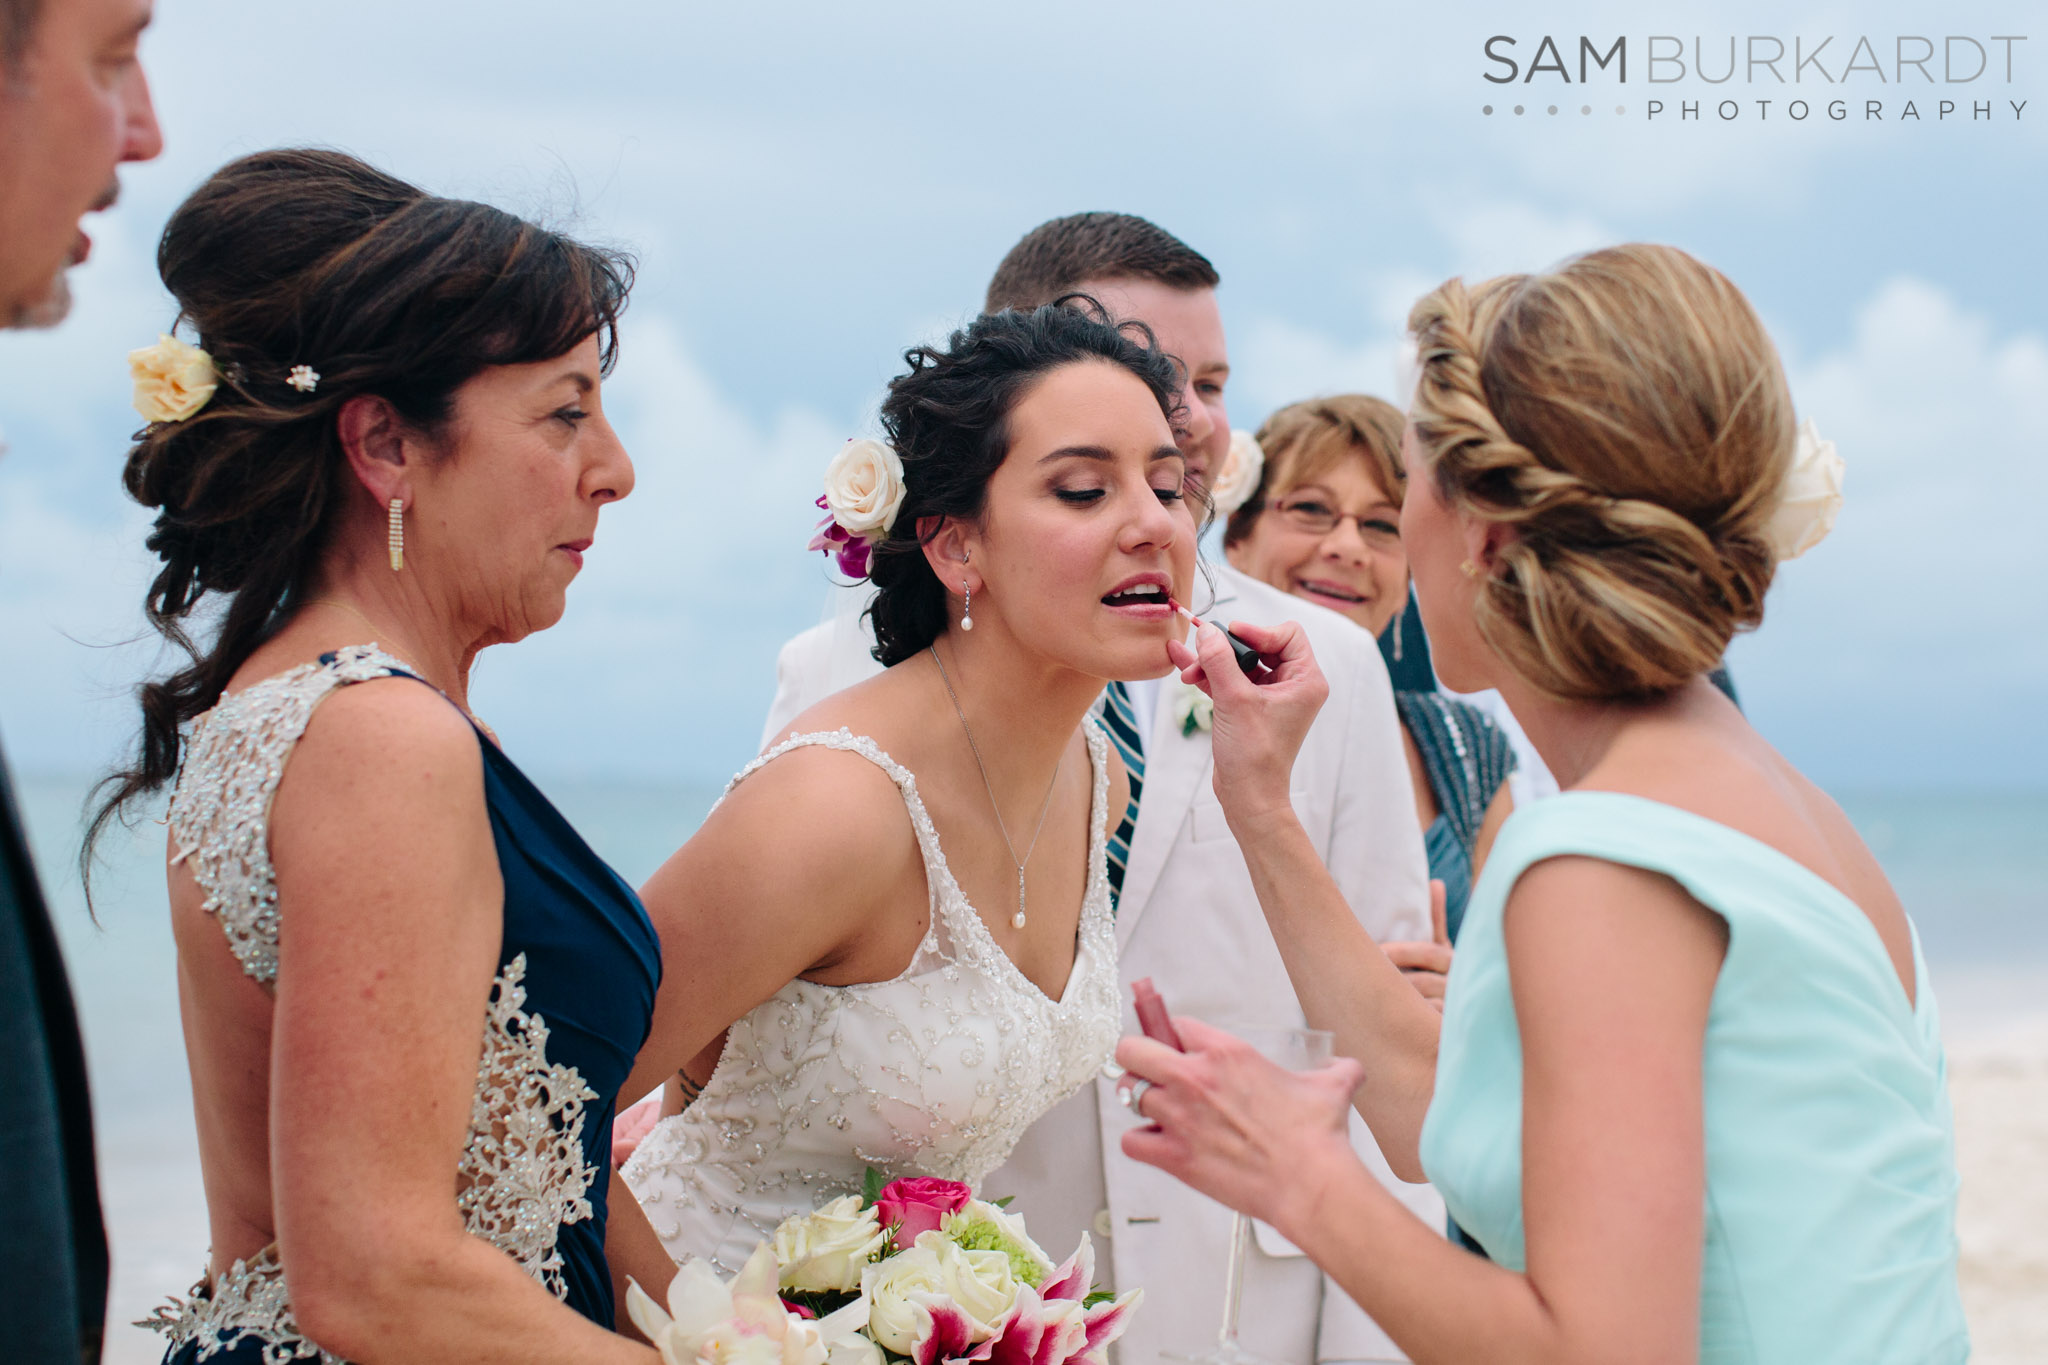 samburkardt-mexico-wedding-beach-0044.jpg